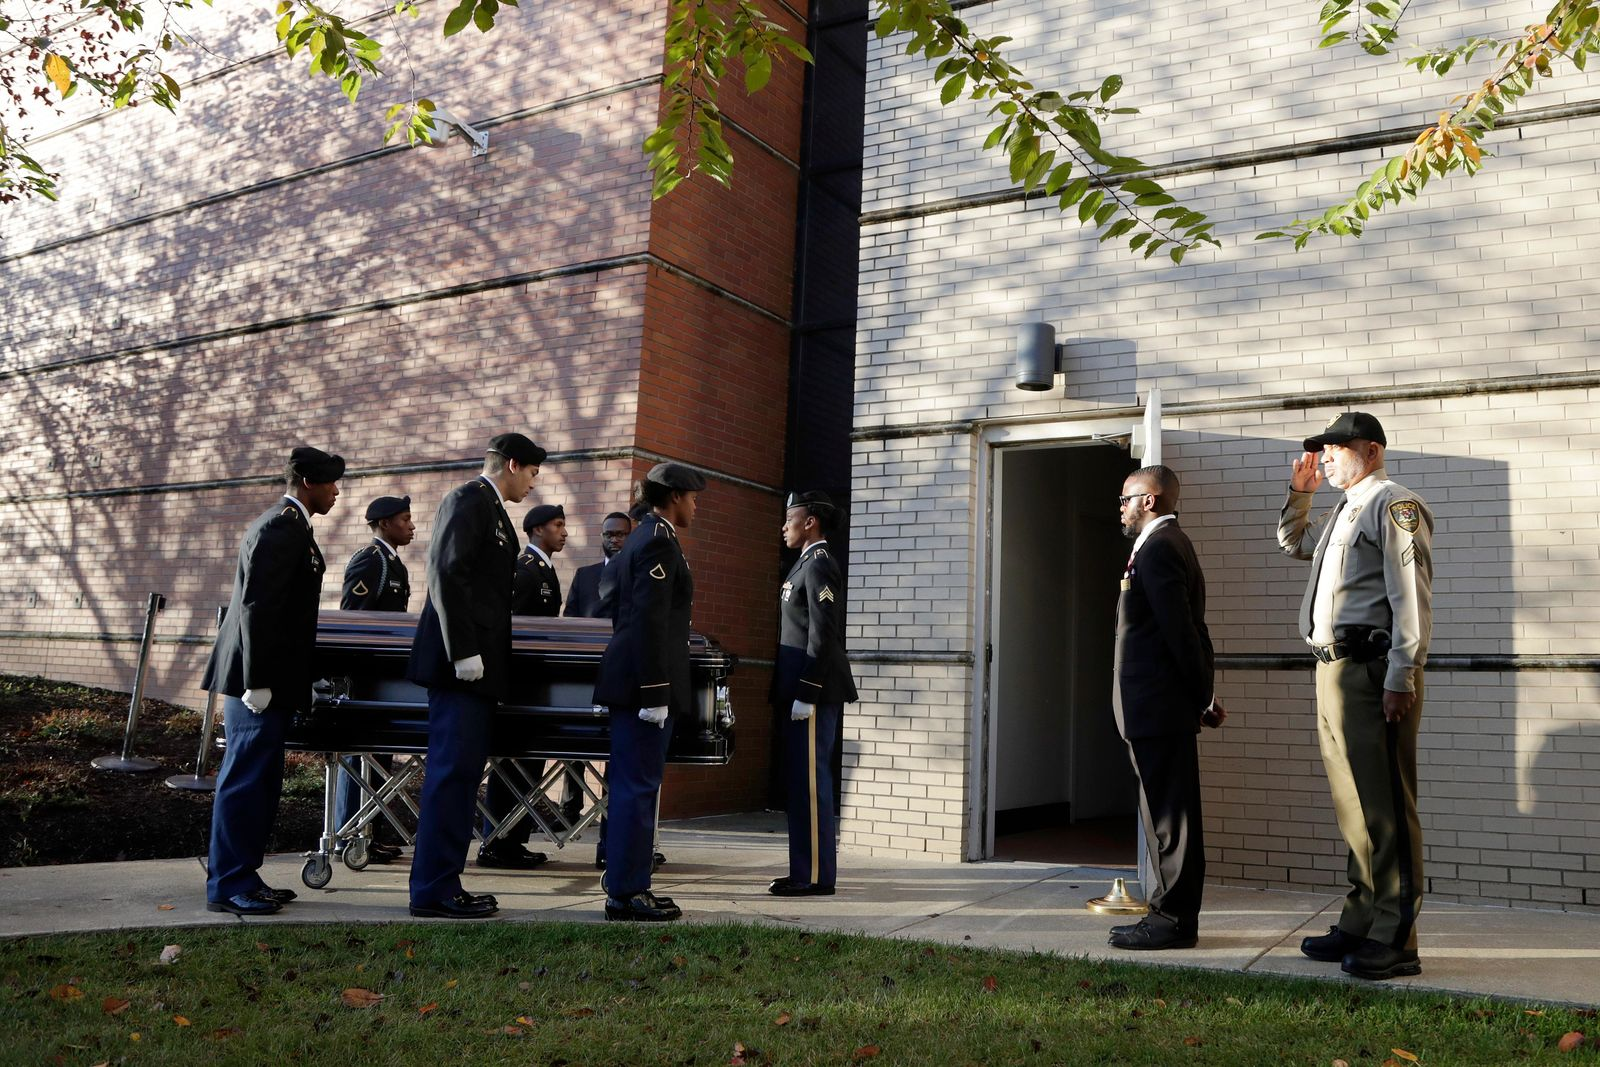 Pallbearers pause before entering the Murphy Fine Arts Center at Morgan State University ahead of a public viewing for U.S. Rep. Elijah Cummings, Wednesday, Oct. 23, 2019, in Baltimore. (AP Photo/Julio Cortez)